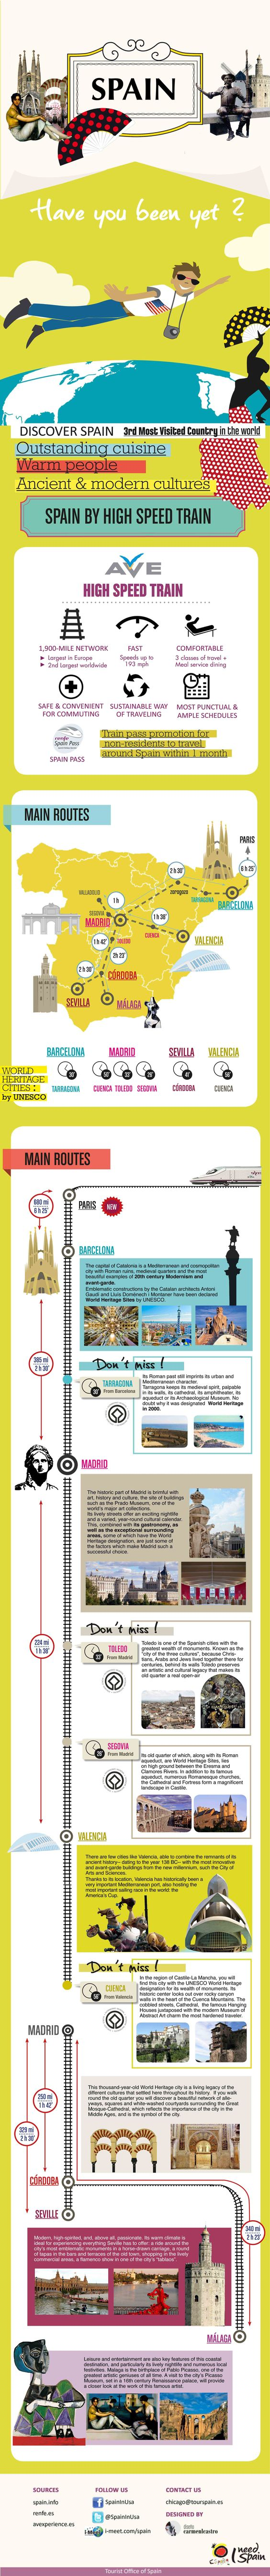 Get the most out of Spain by traveling around the country on the AVE High Speed train.  Visit the major cities within super short times!